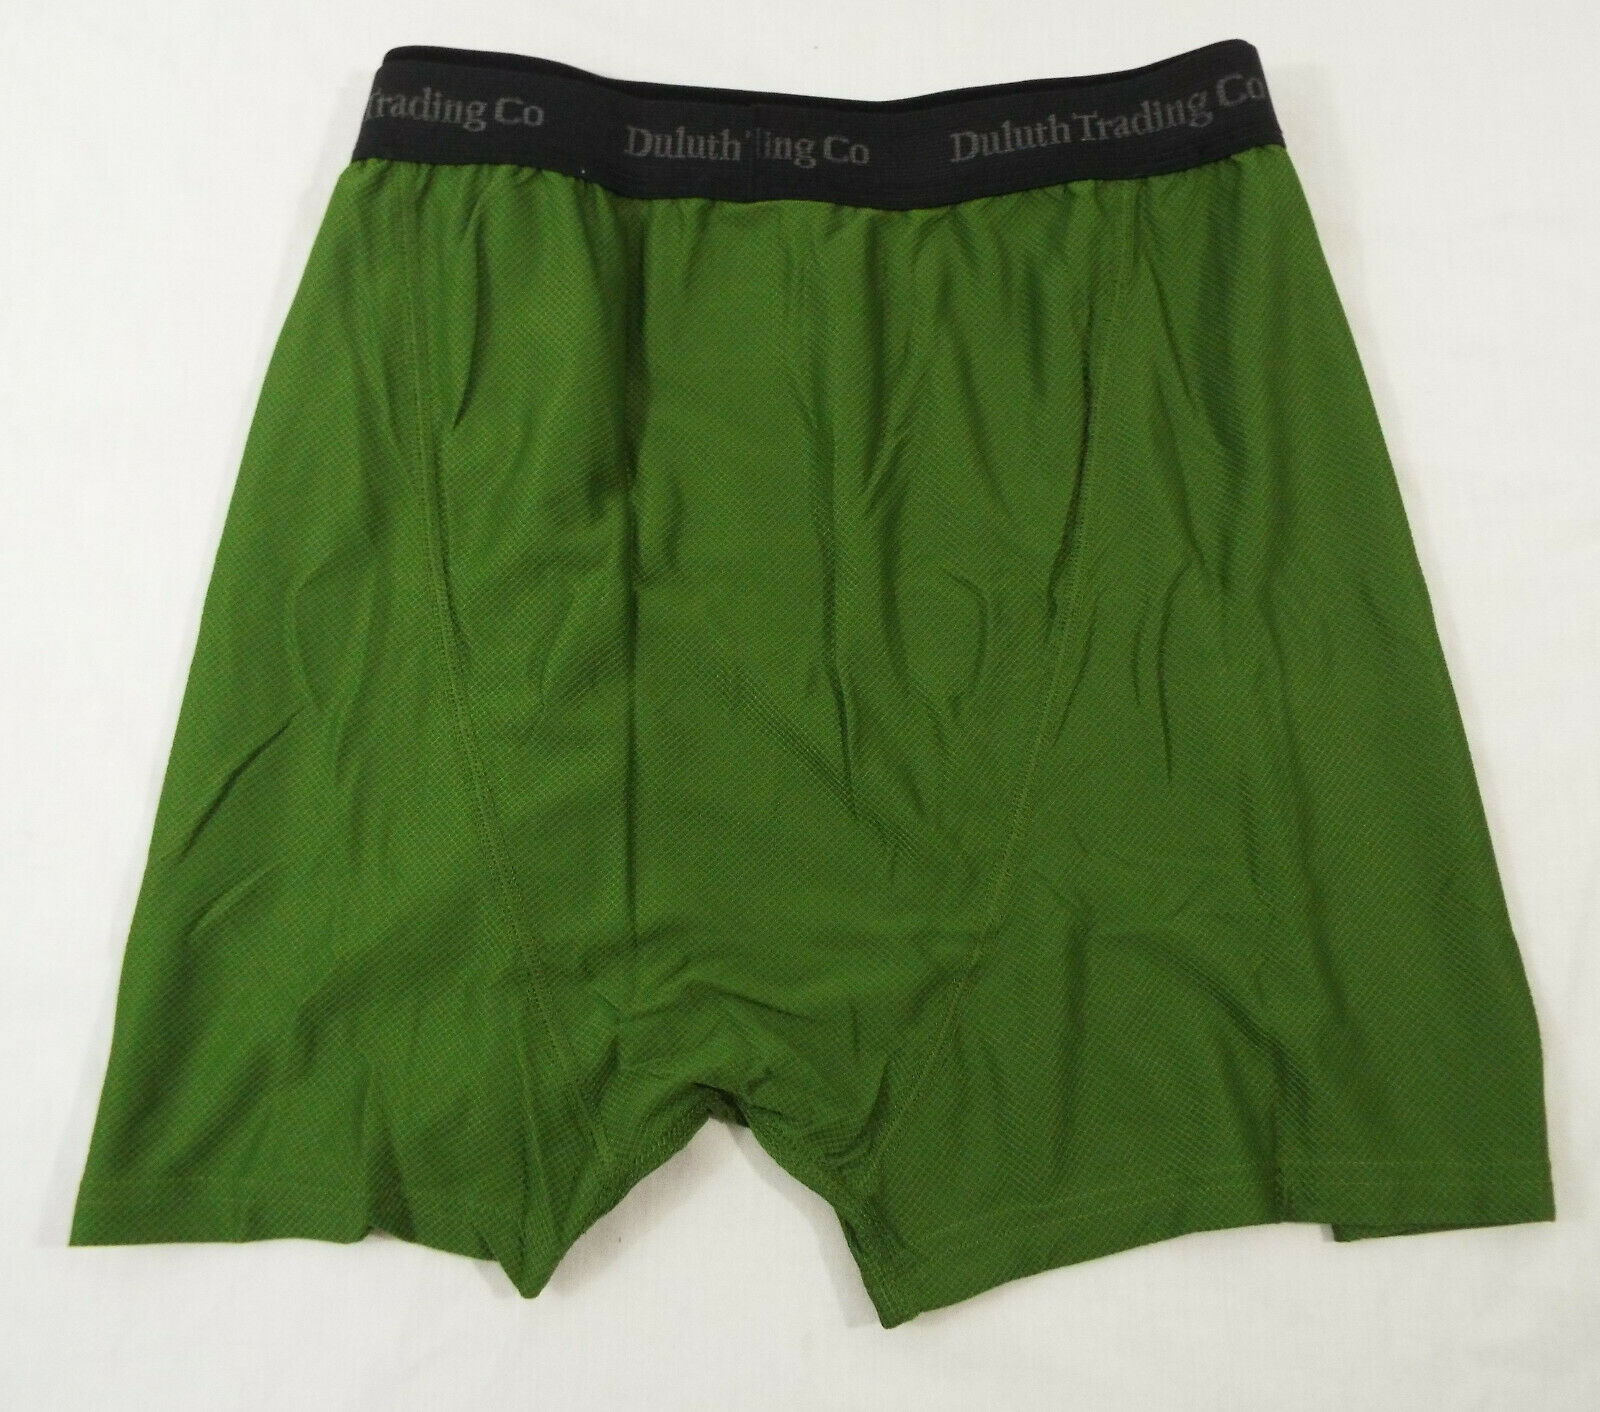 Men 1 Pair Duluth Trading Co X Long Buck Naked Boxer Brief